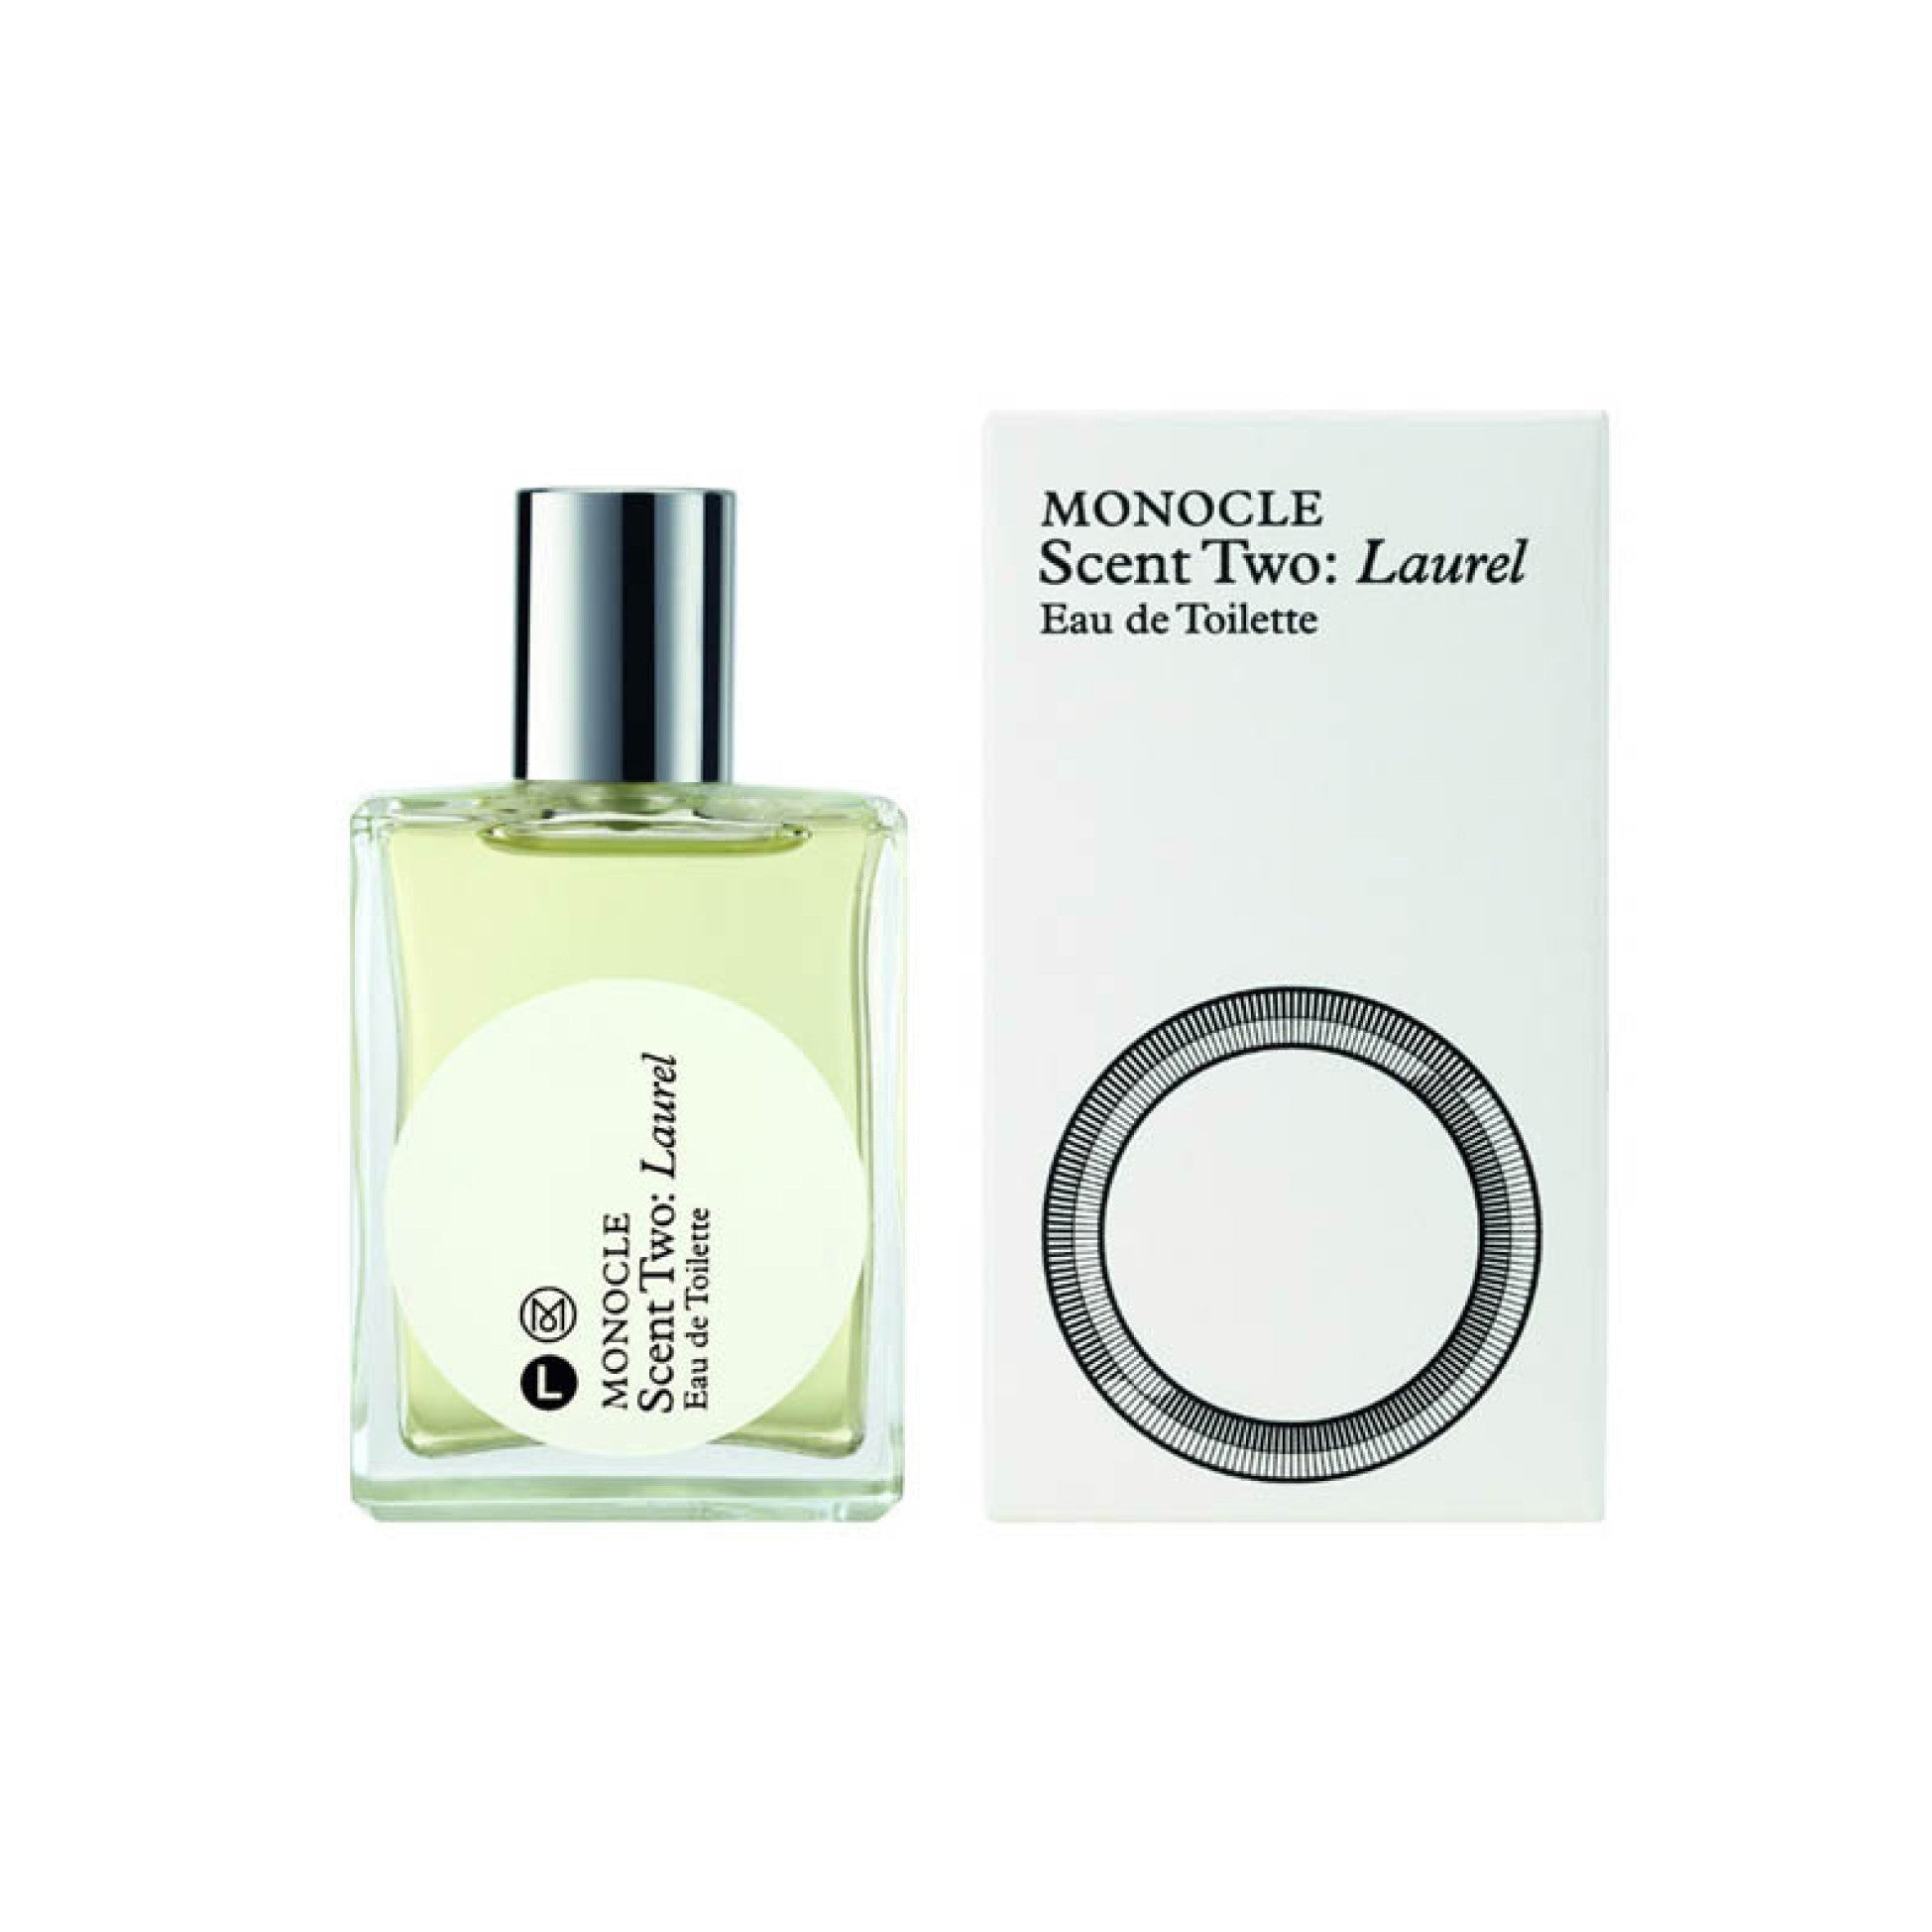 MONOCLE Scent Two: Laurel - Eau de Toilette